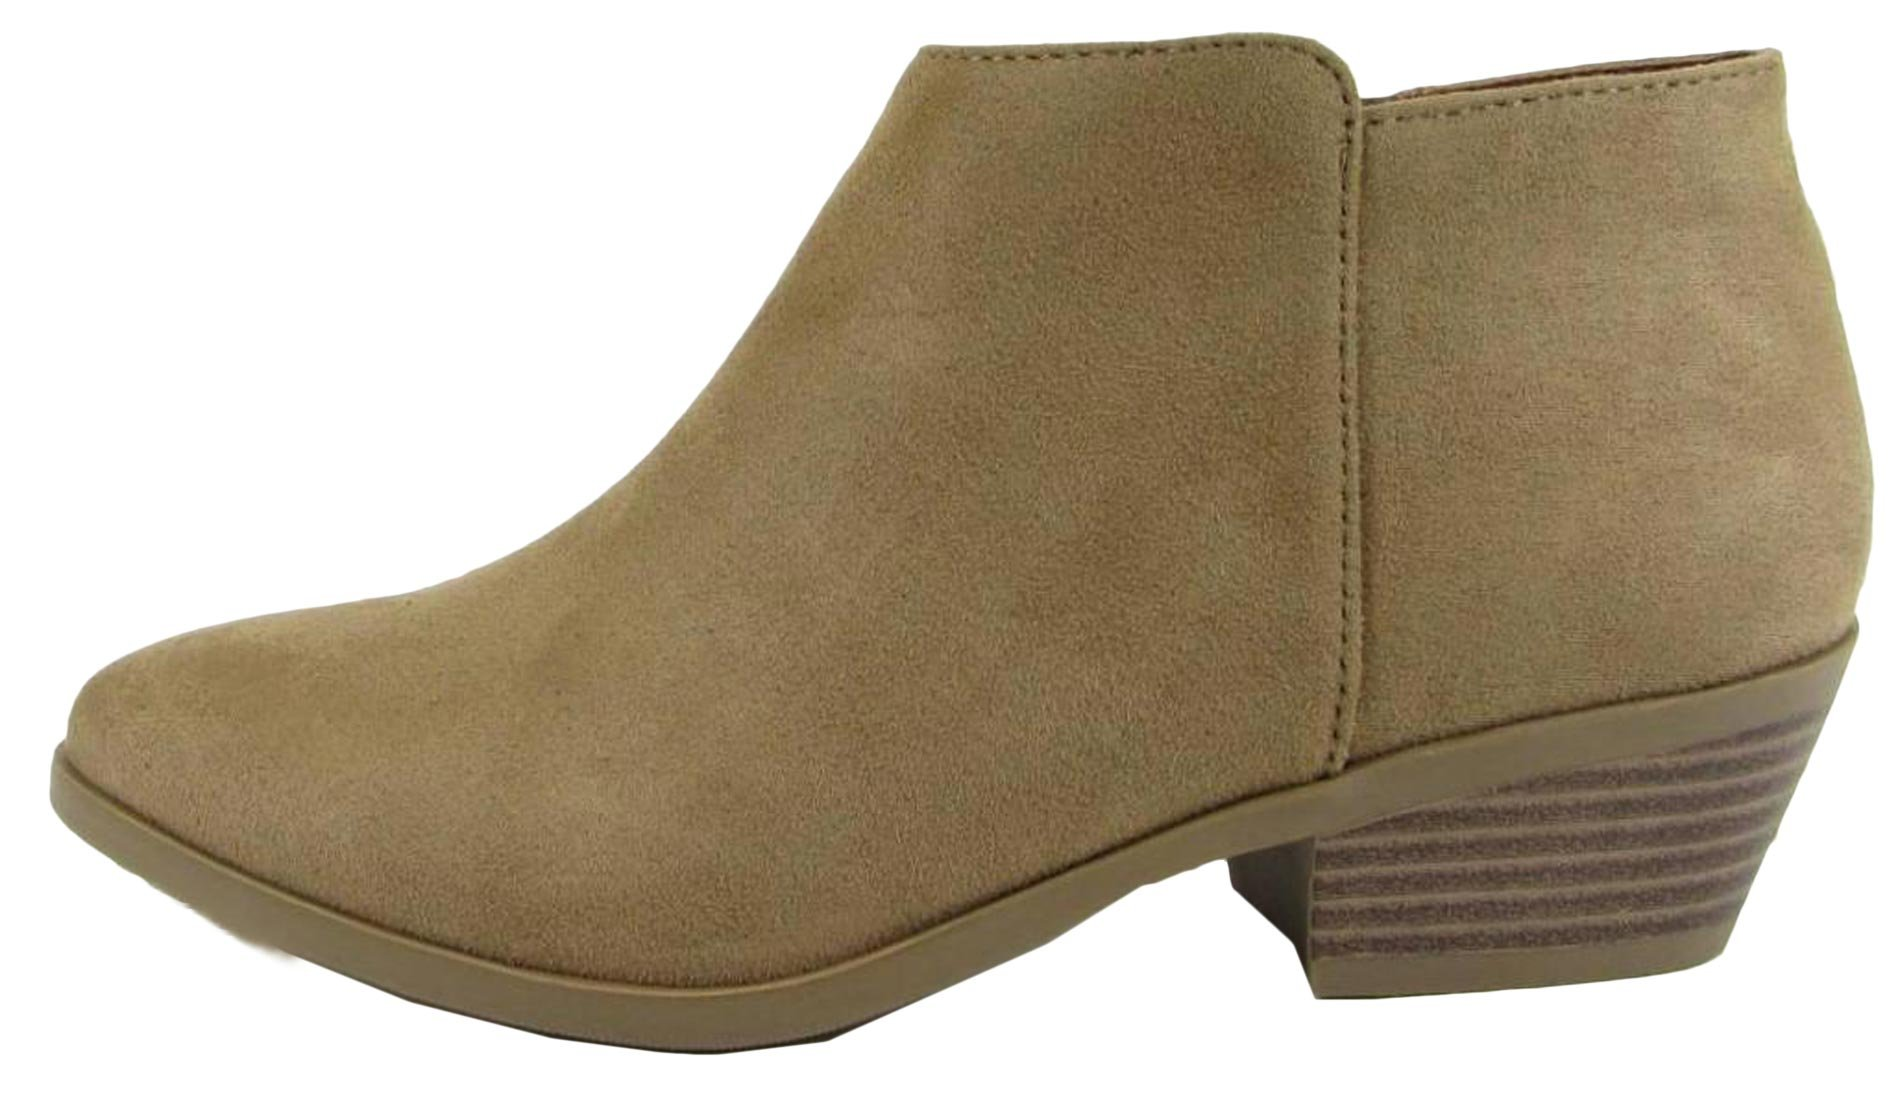 Western Ankle Boot- Cowgirl Low Heel Closed Toe Casual Bootie Natural ISU 8.5